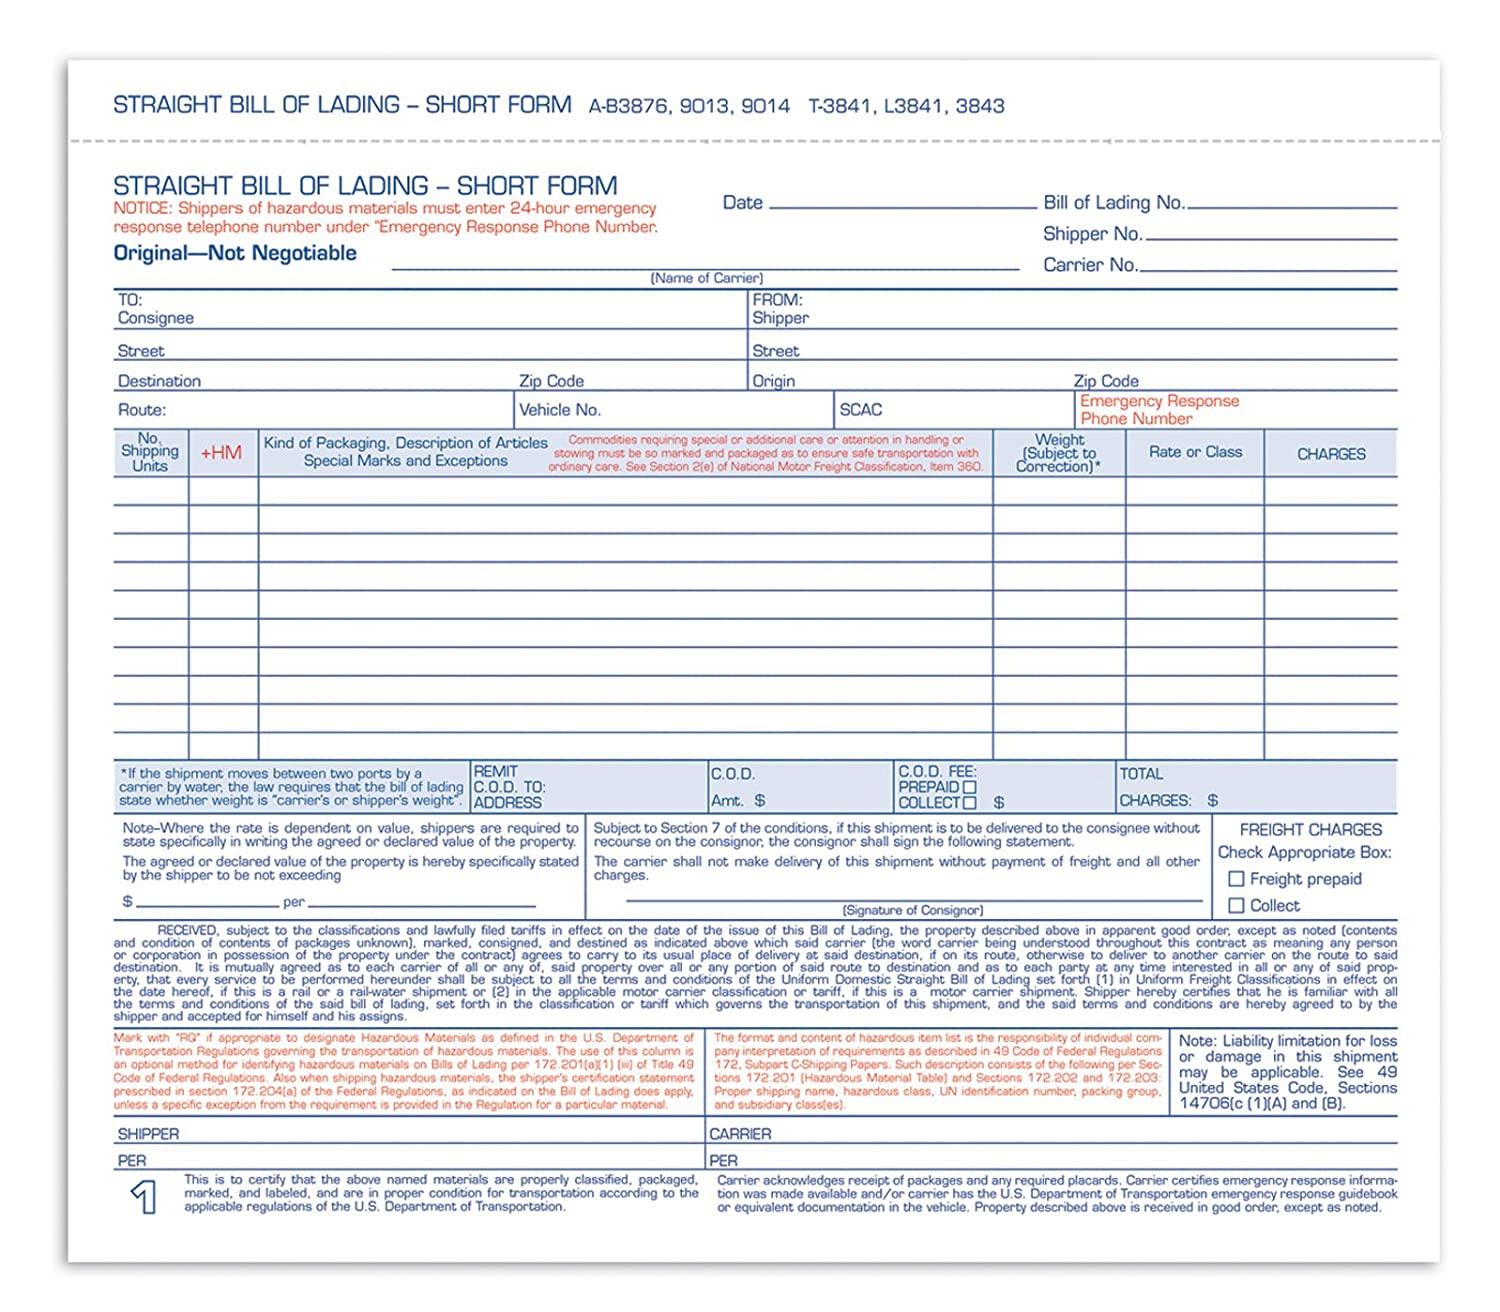 Amazon.com : Adams Bill Of Lading Short Form, 8 1/2 X 7 7/16 Inches, White,  3 Part, 250 Count (B3876) : Blank Shipping Forms : Office Products